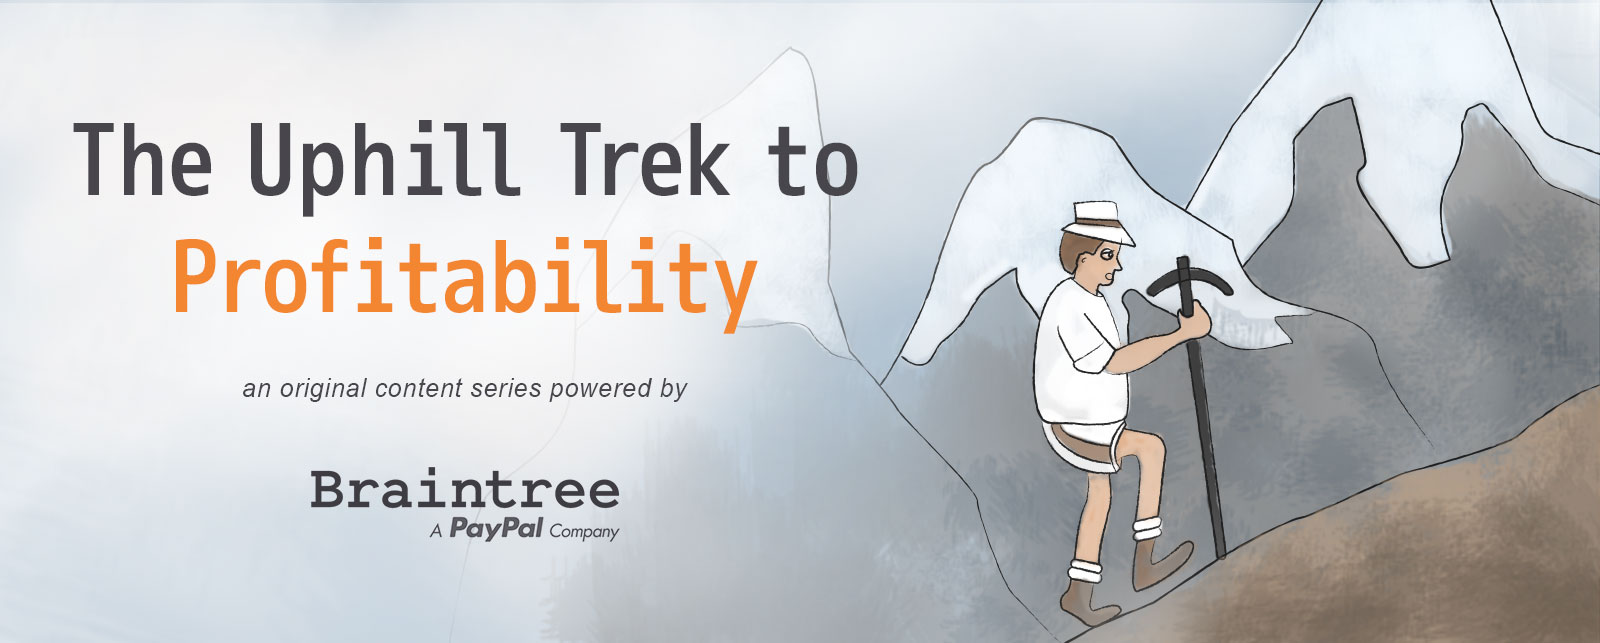 The Uphill Trek to Profitability, an original content series powered by Braintree